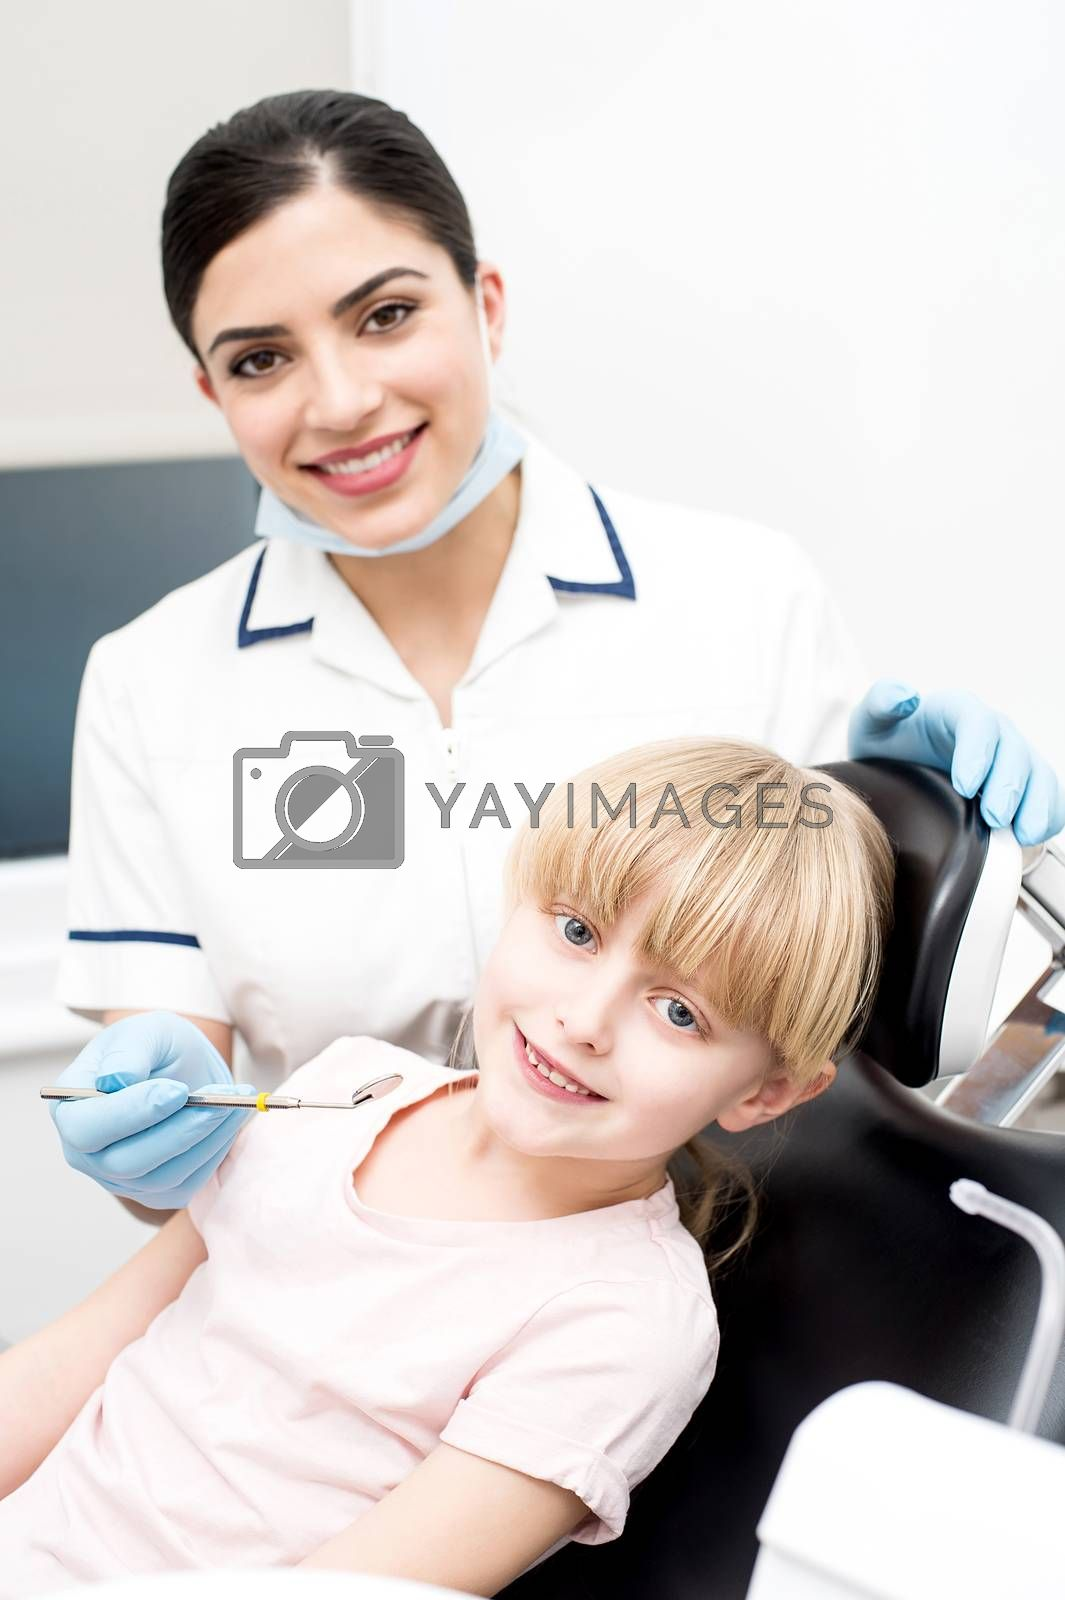 Dental assistant and little girl looking at camera